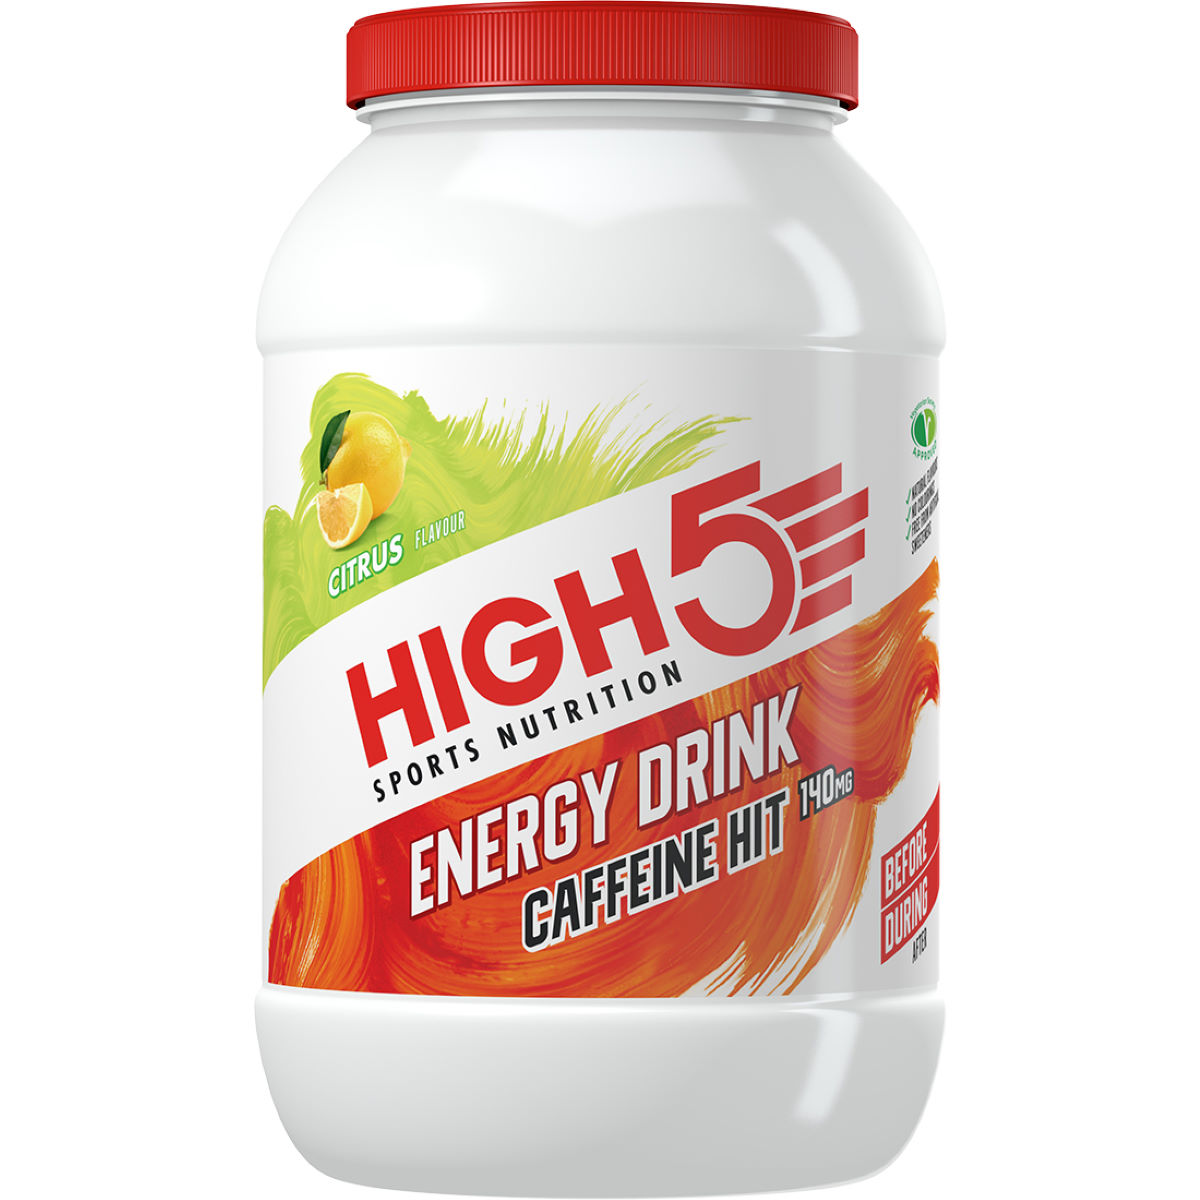 High5 Energy Drink Caffeine Hit (1.4kg)